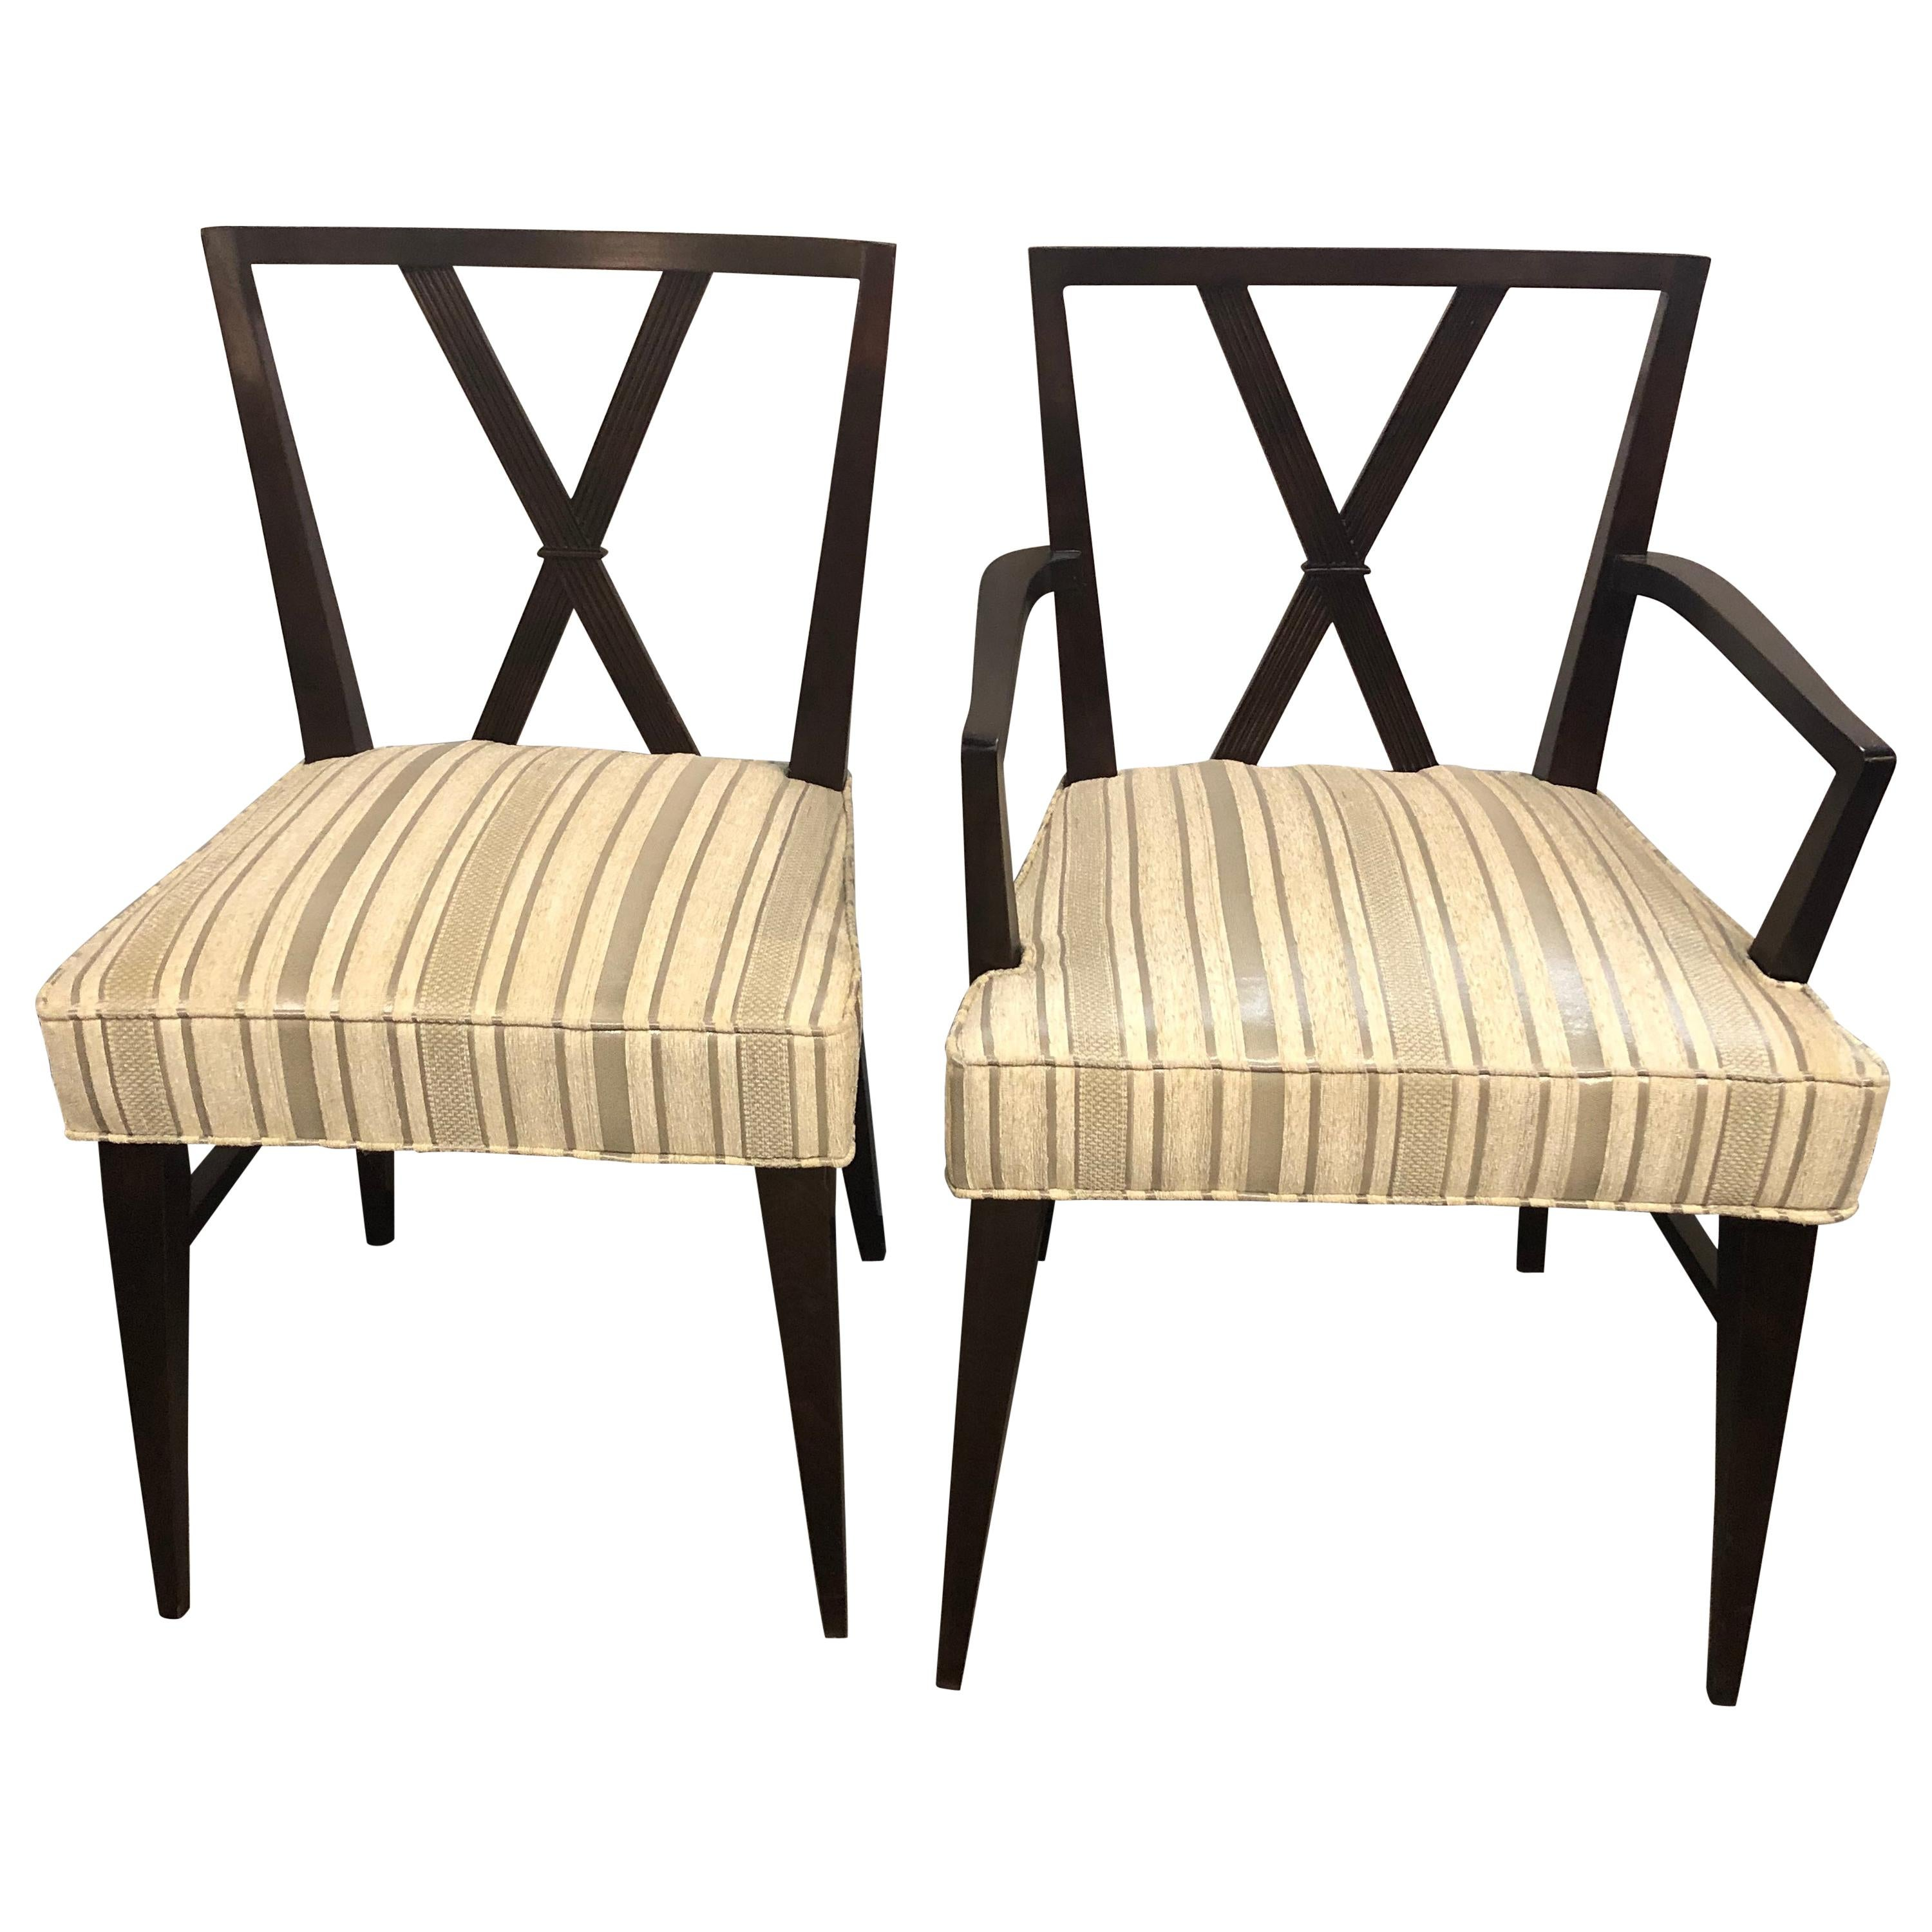 Set of Twelve Mid-Century Fully Refinished Dining Chairs